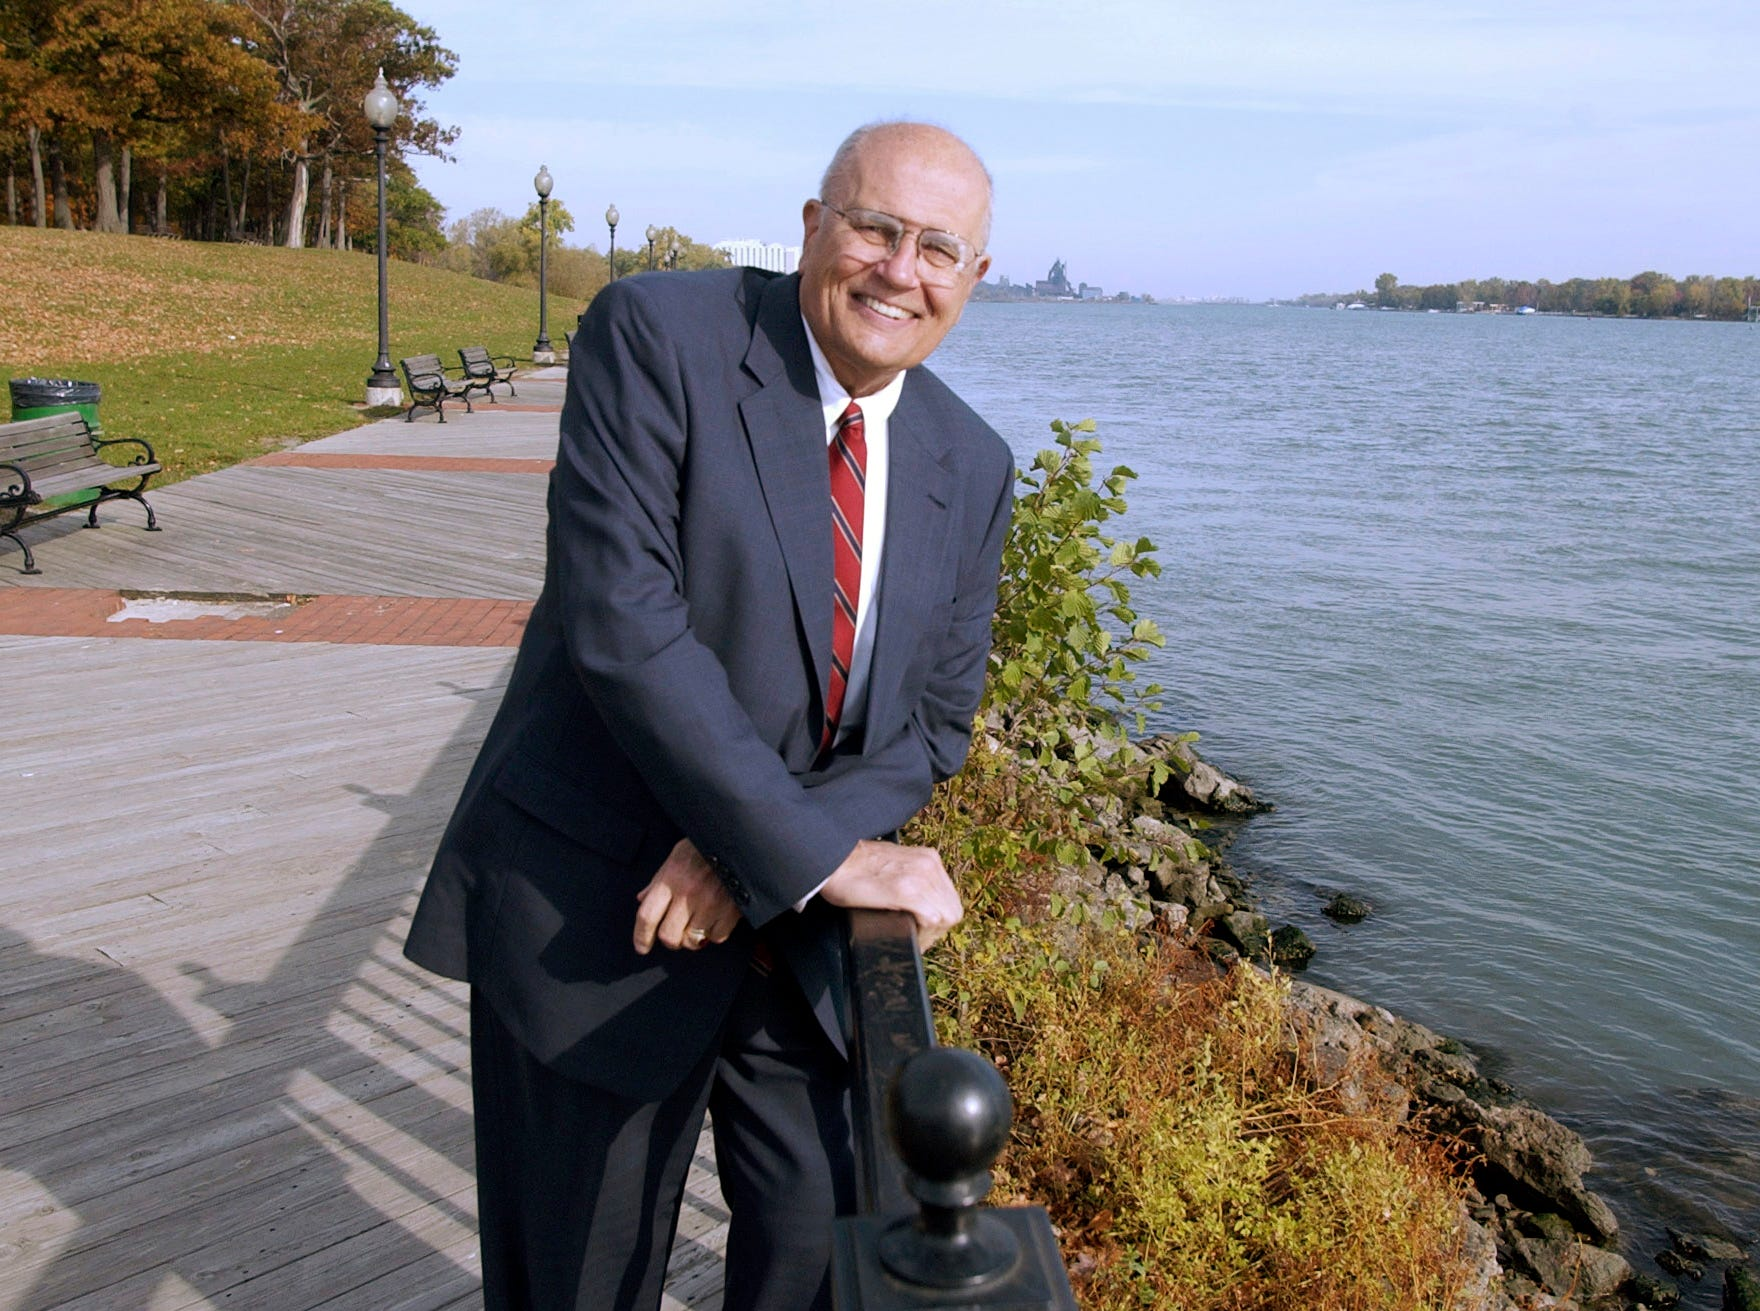 Seen in 2003 in Trenton, Dingell sponsored a bill to establish an international wildlife refuge along the lower Detroit River. Dingell also was instrumental in preserving Humbug Marsh near Gibraltar as the centerpiece of the wildlife refuge.